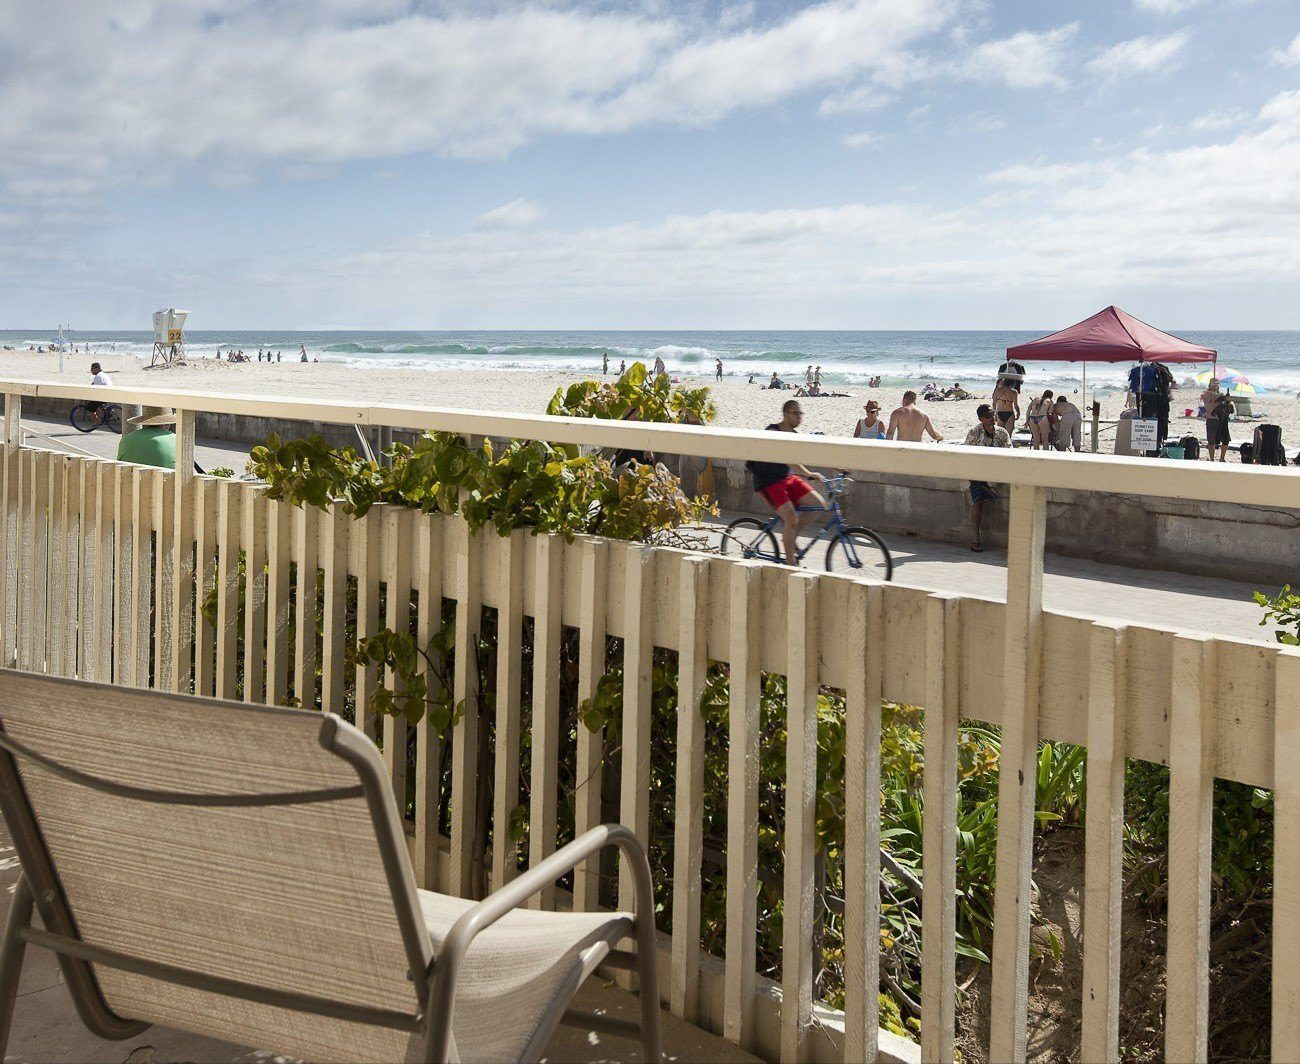 View of the boardwalk and beach from a room patio at Blue Sea Beach Hotel, one of the best beach hotels in San Diego.